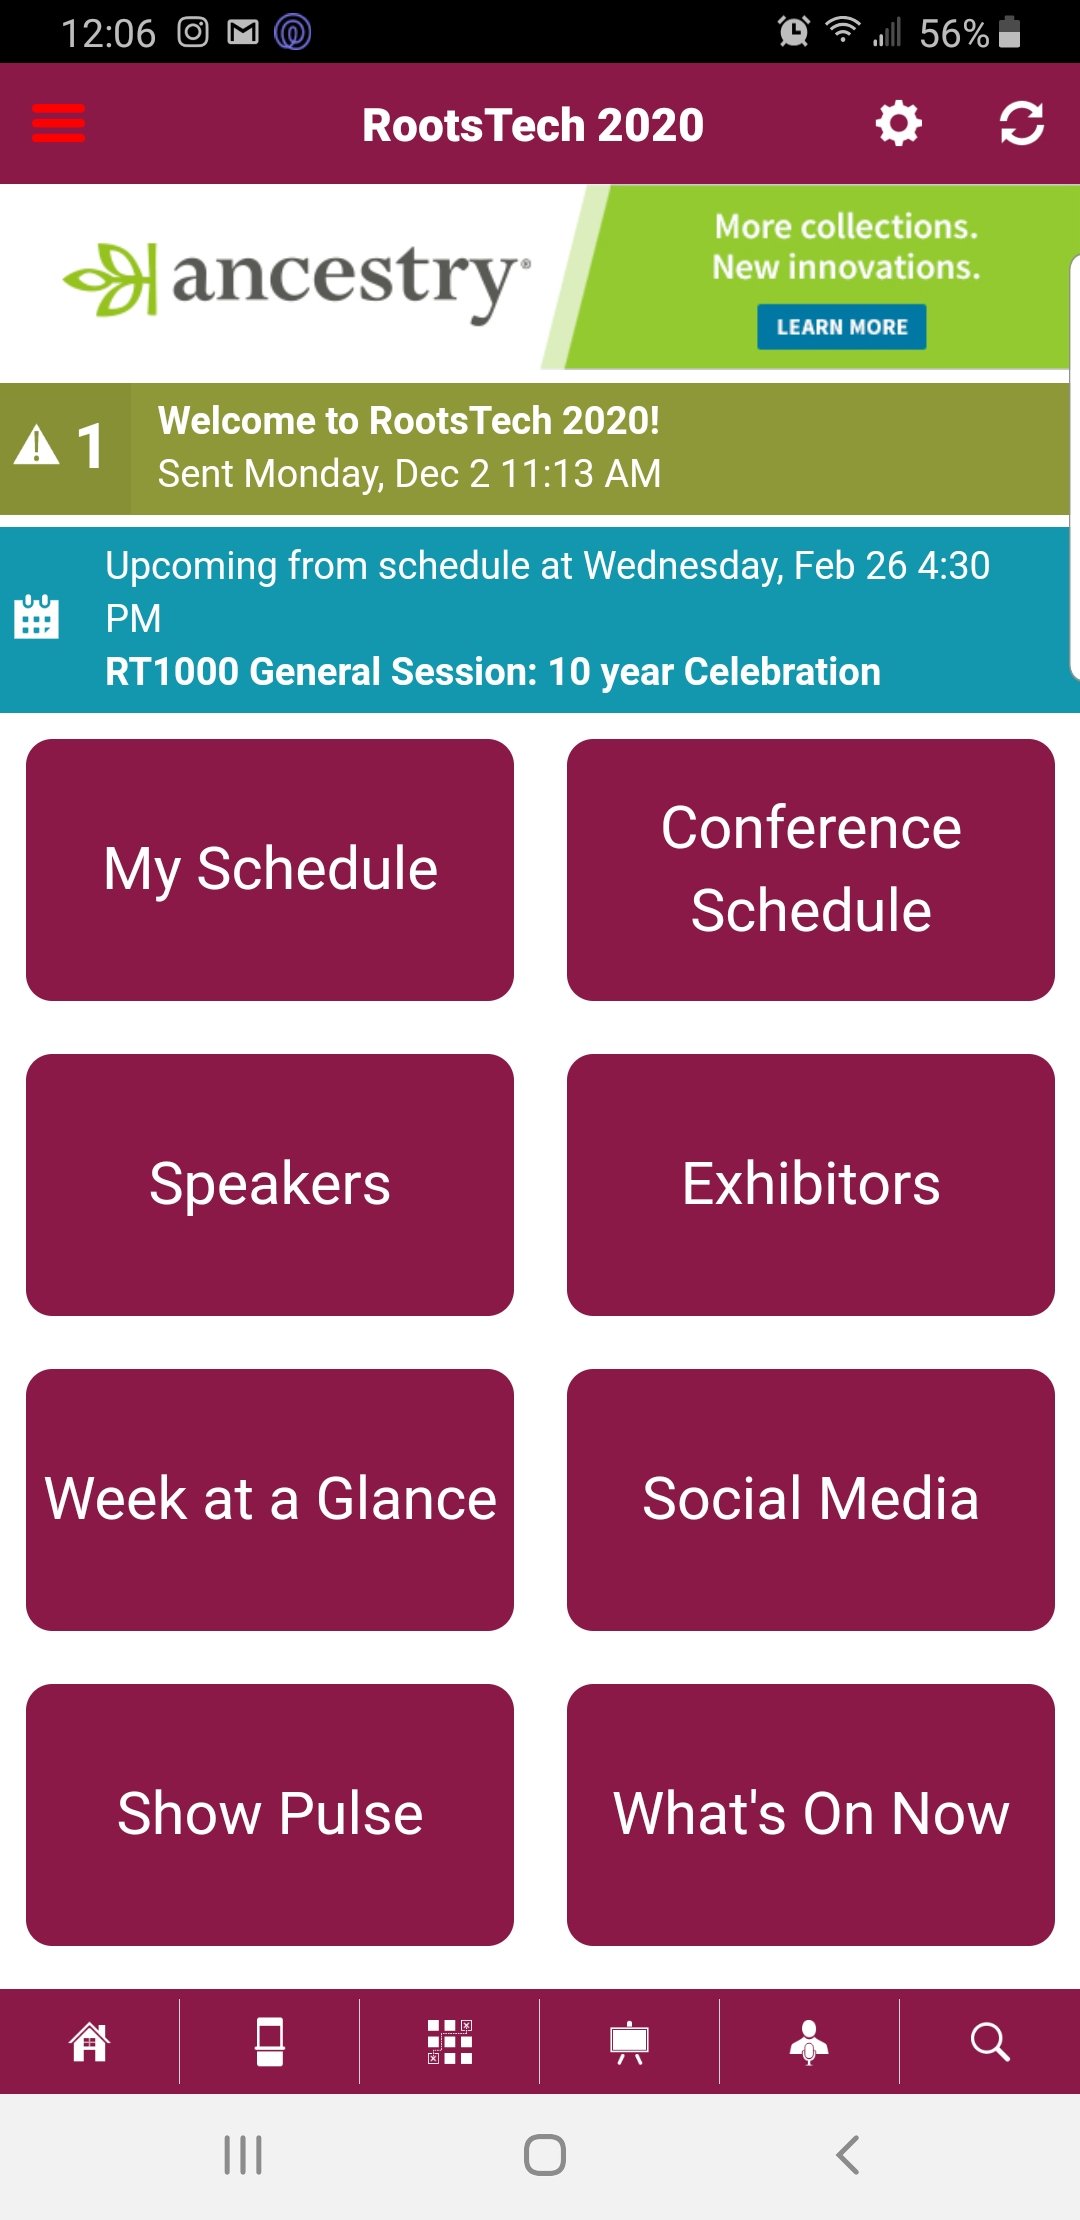 RootsTech 2020 app now available